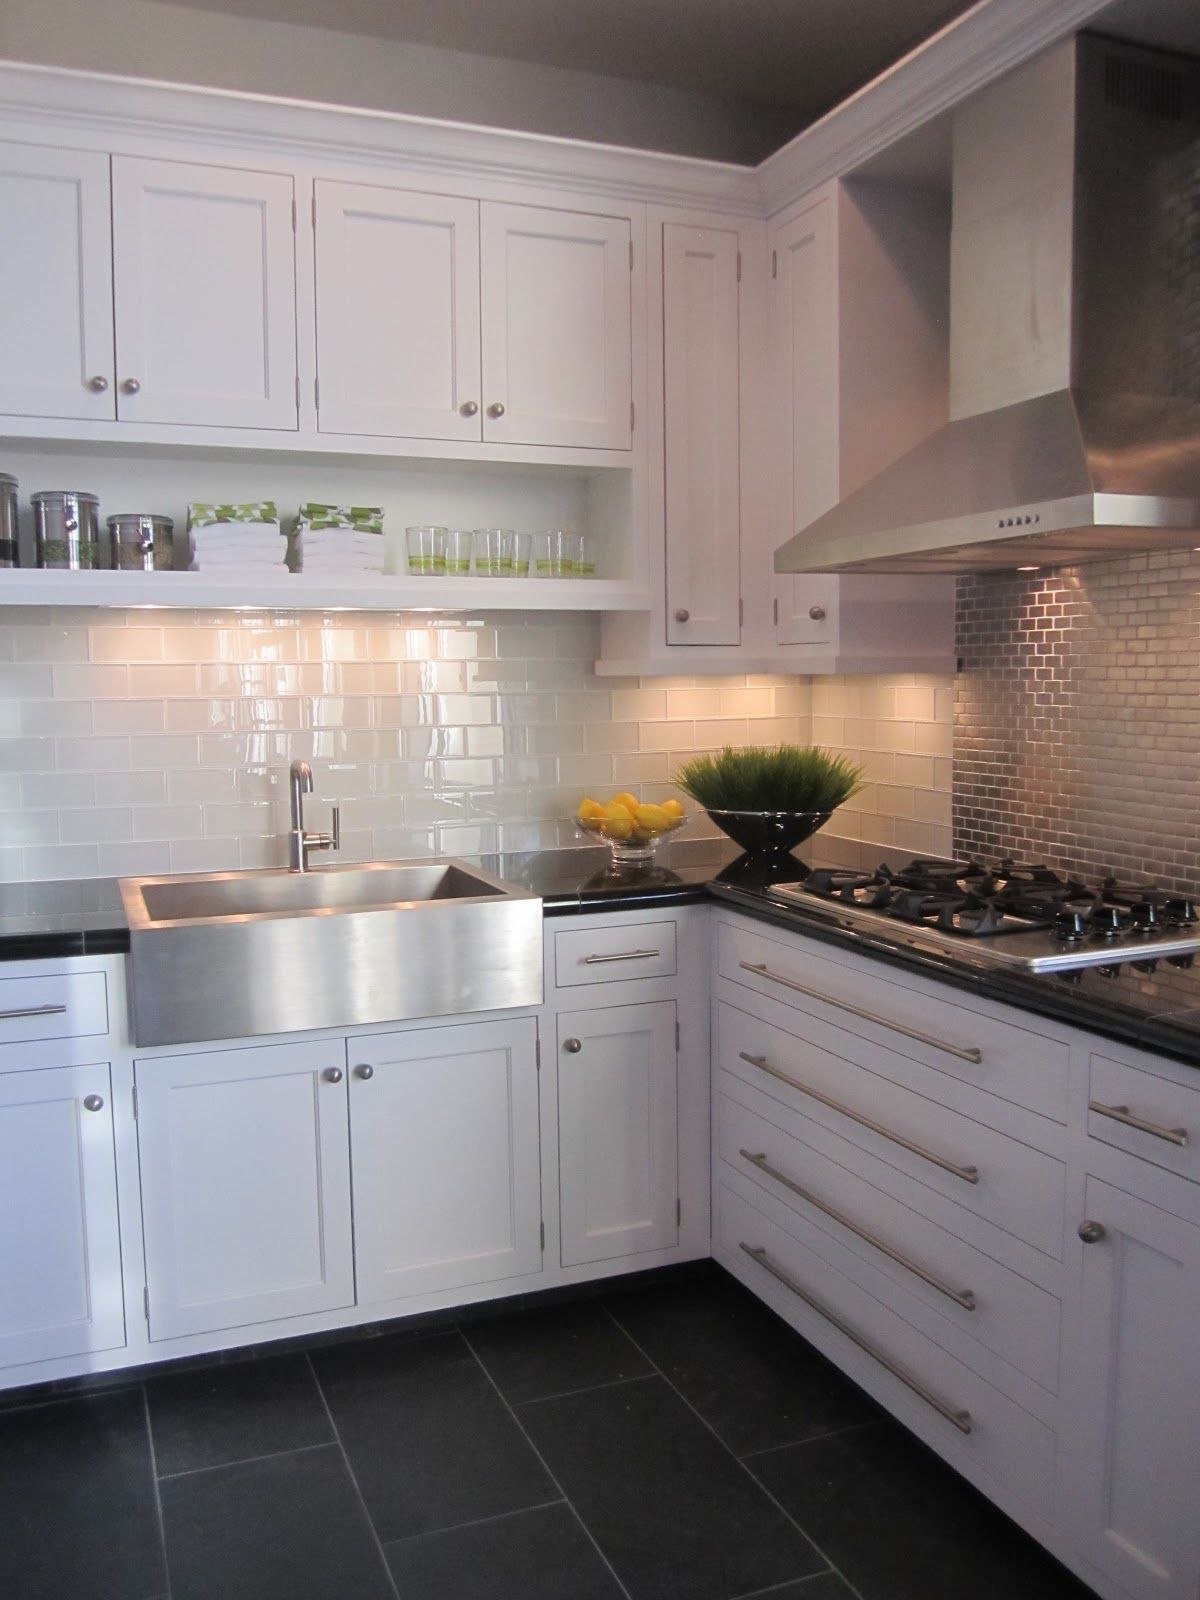 Kitchen White Cabinet Dark Grey Floor Tiles | Kitchen ...